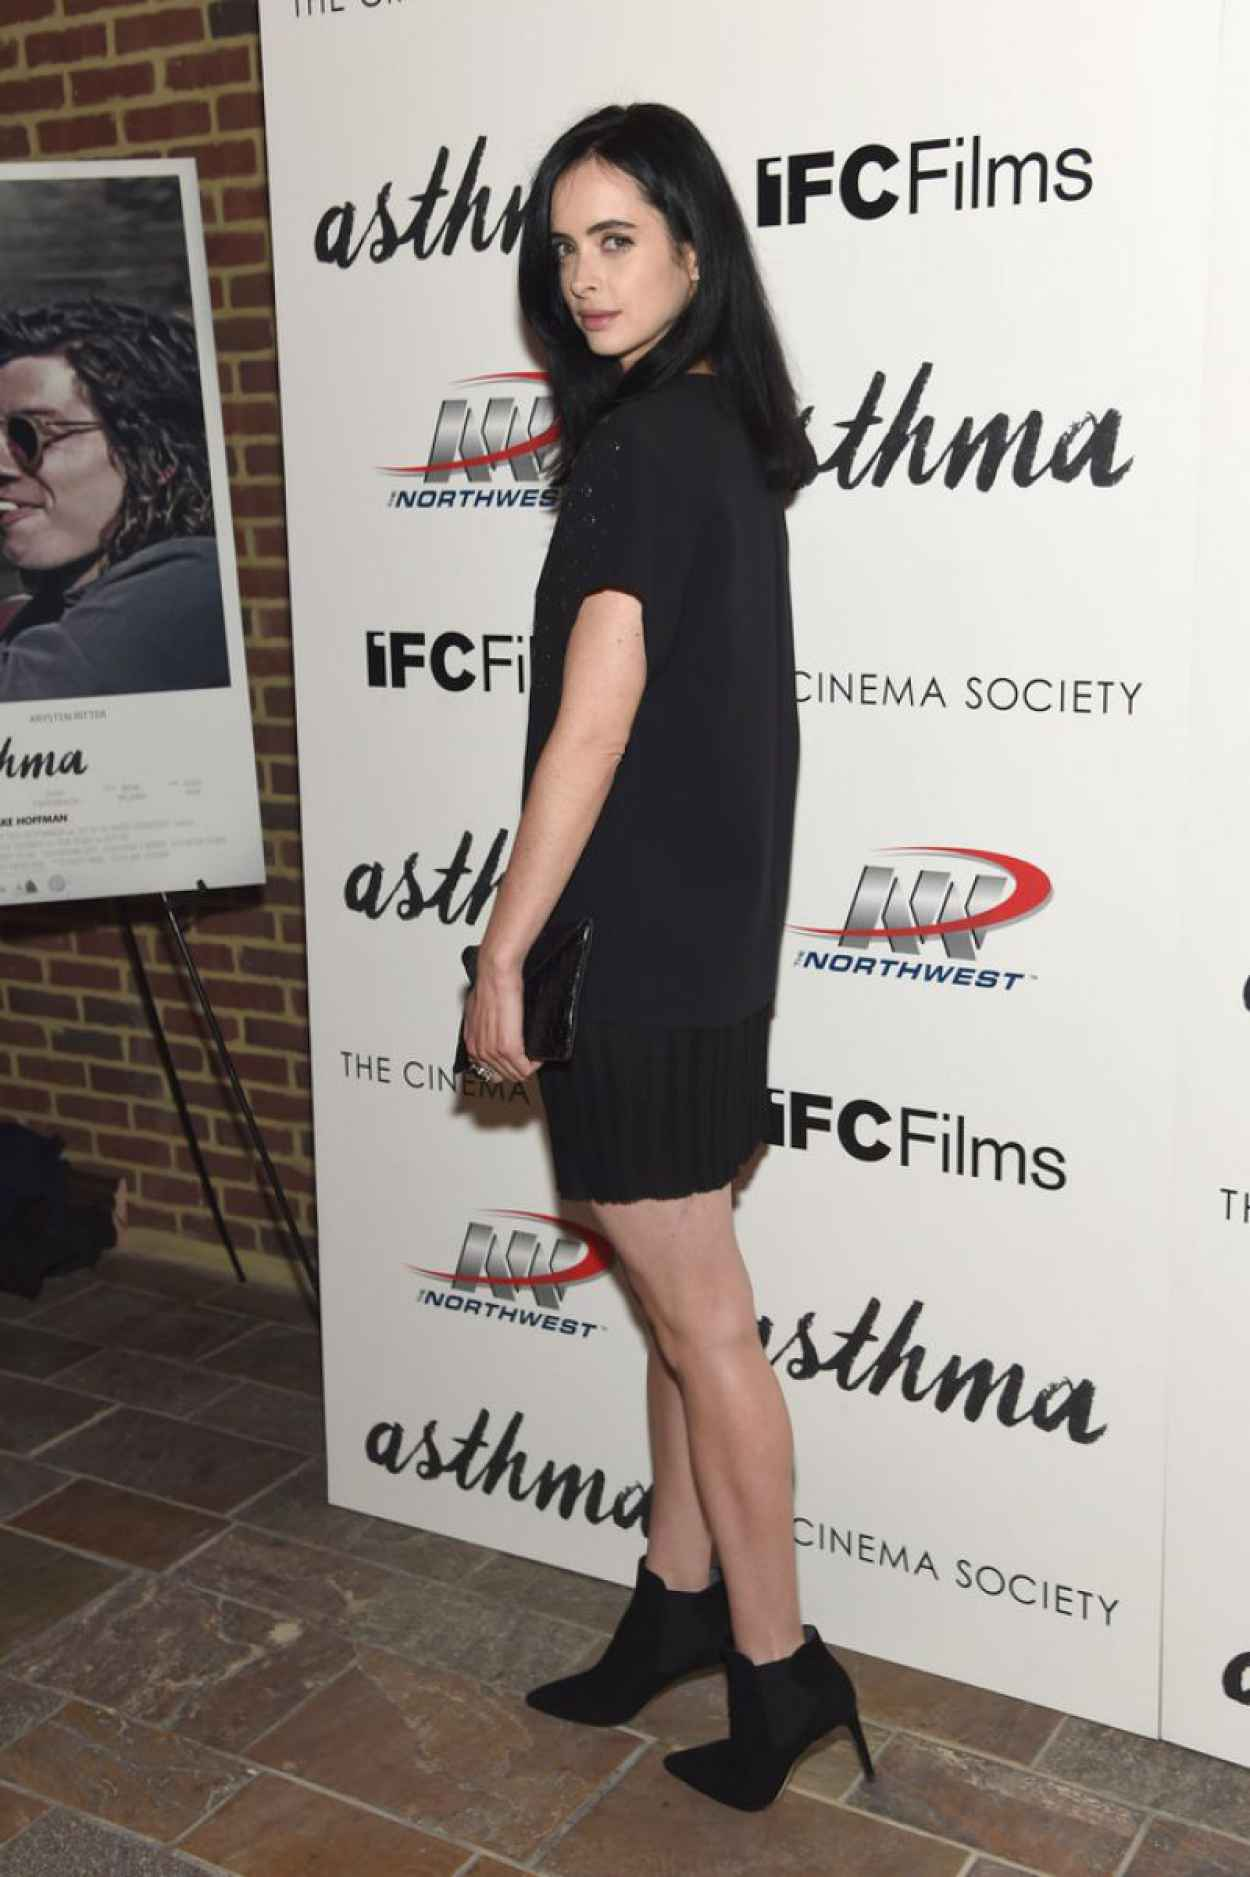 Krysten Ritter - Asthma Screening in NYC-3